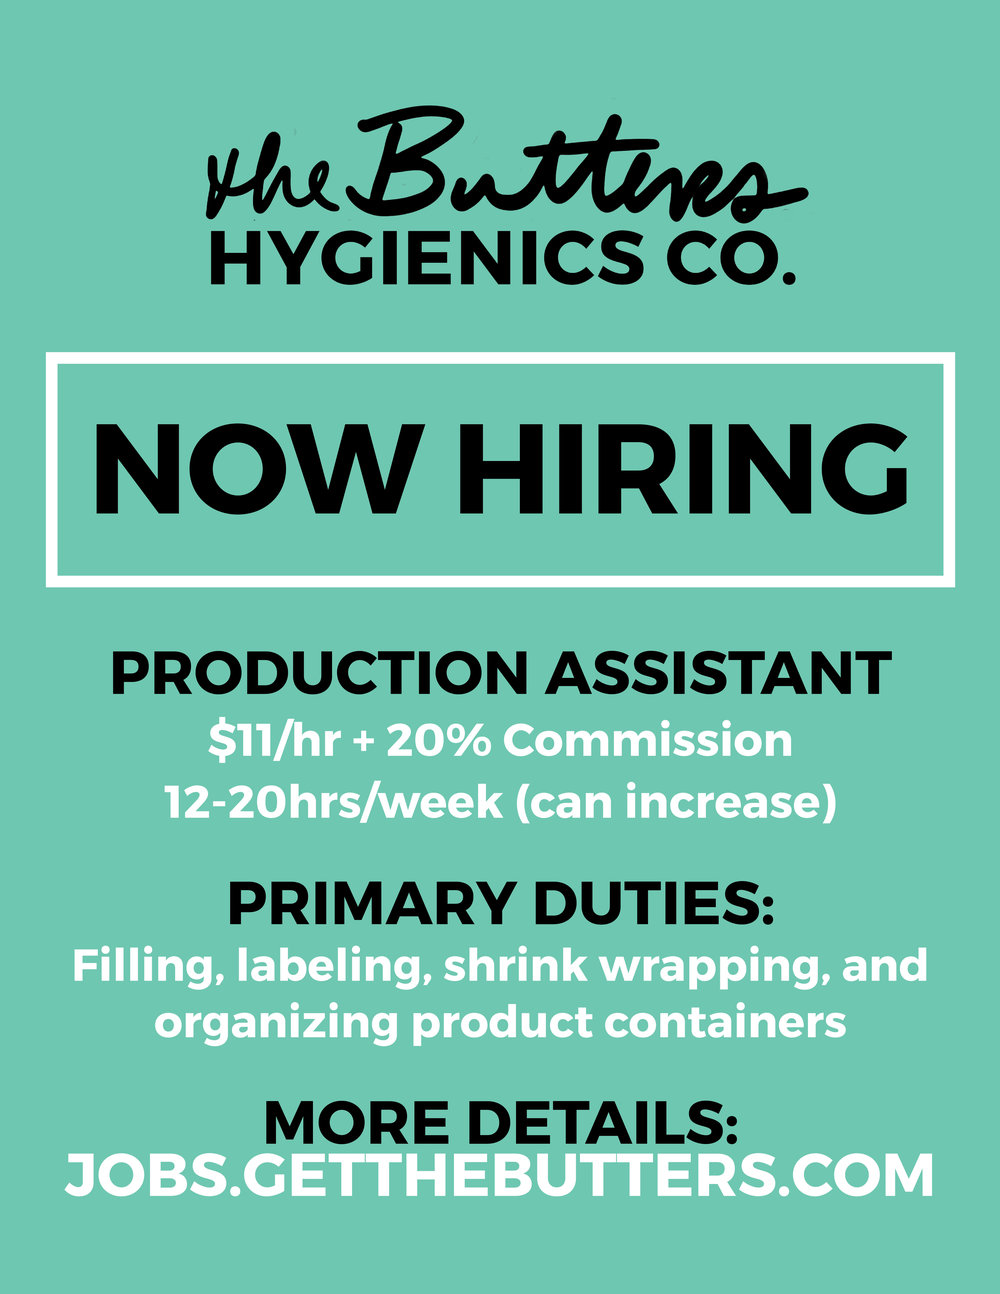 Now Hiring Production Assistant.jpg